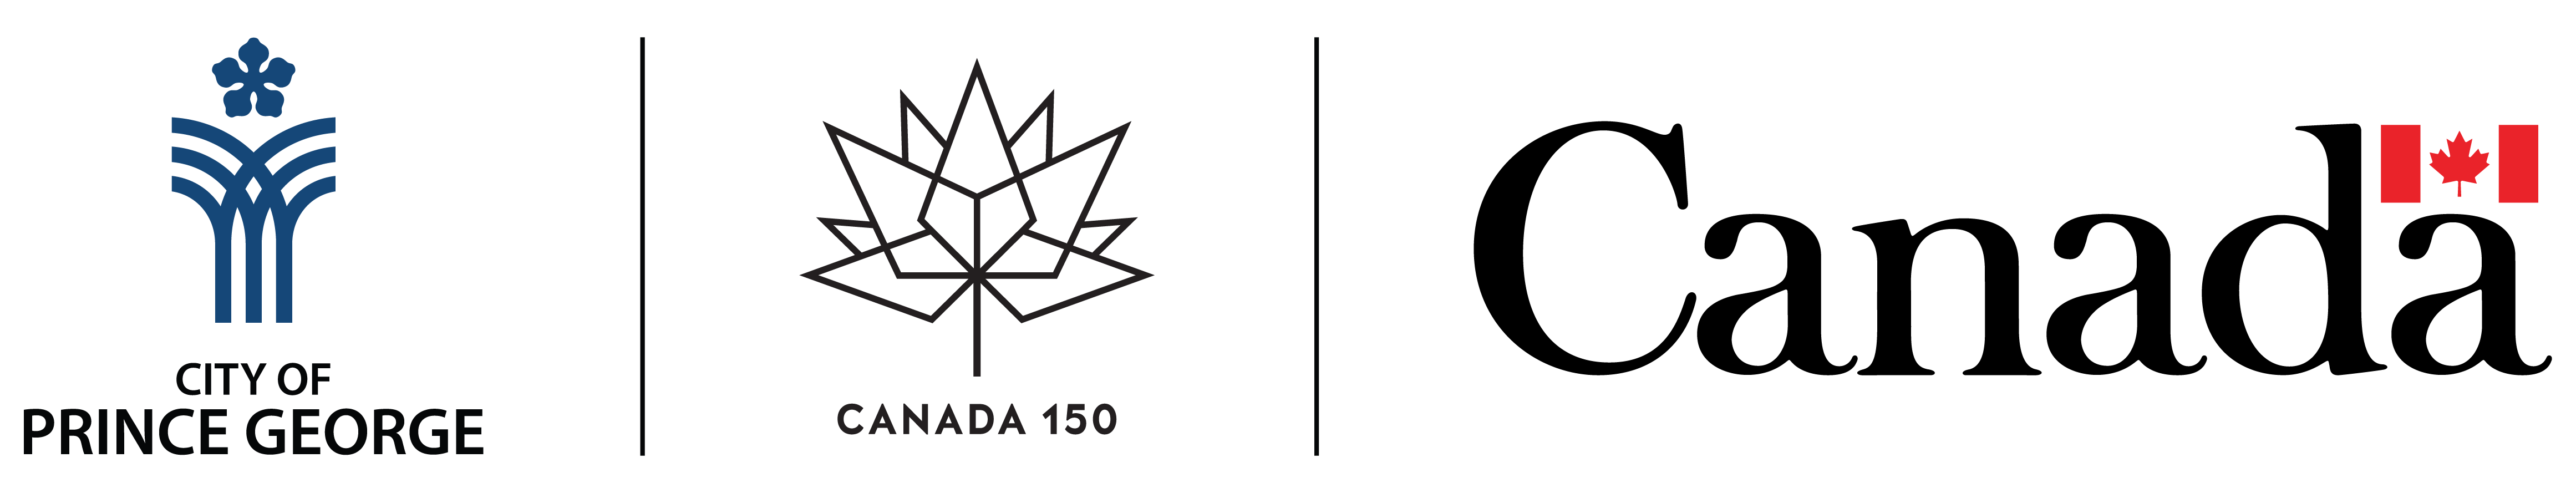 City of Prince George and Government of Canada - Canada 150 Logo